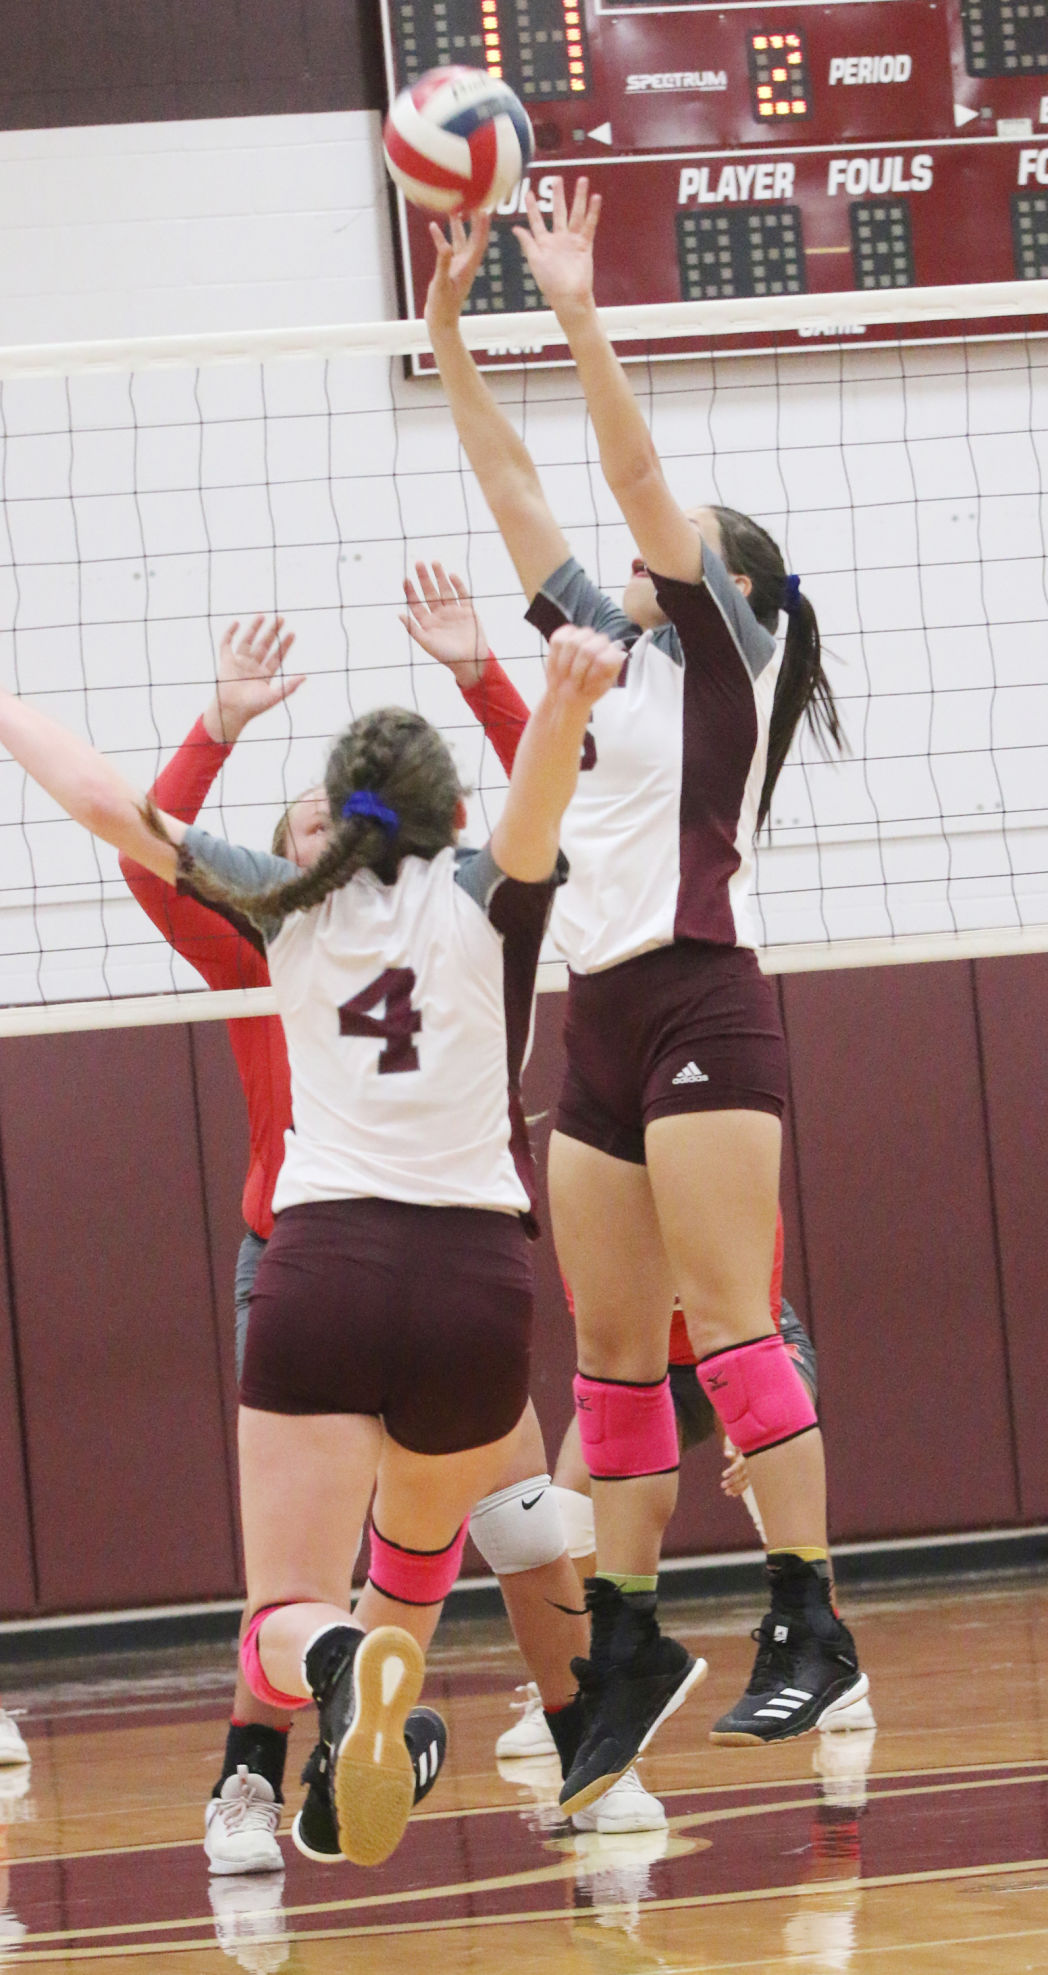 Sinton volleyball makes easy work of Robstown